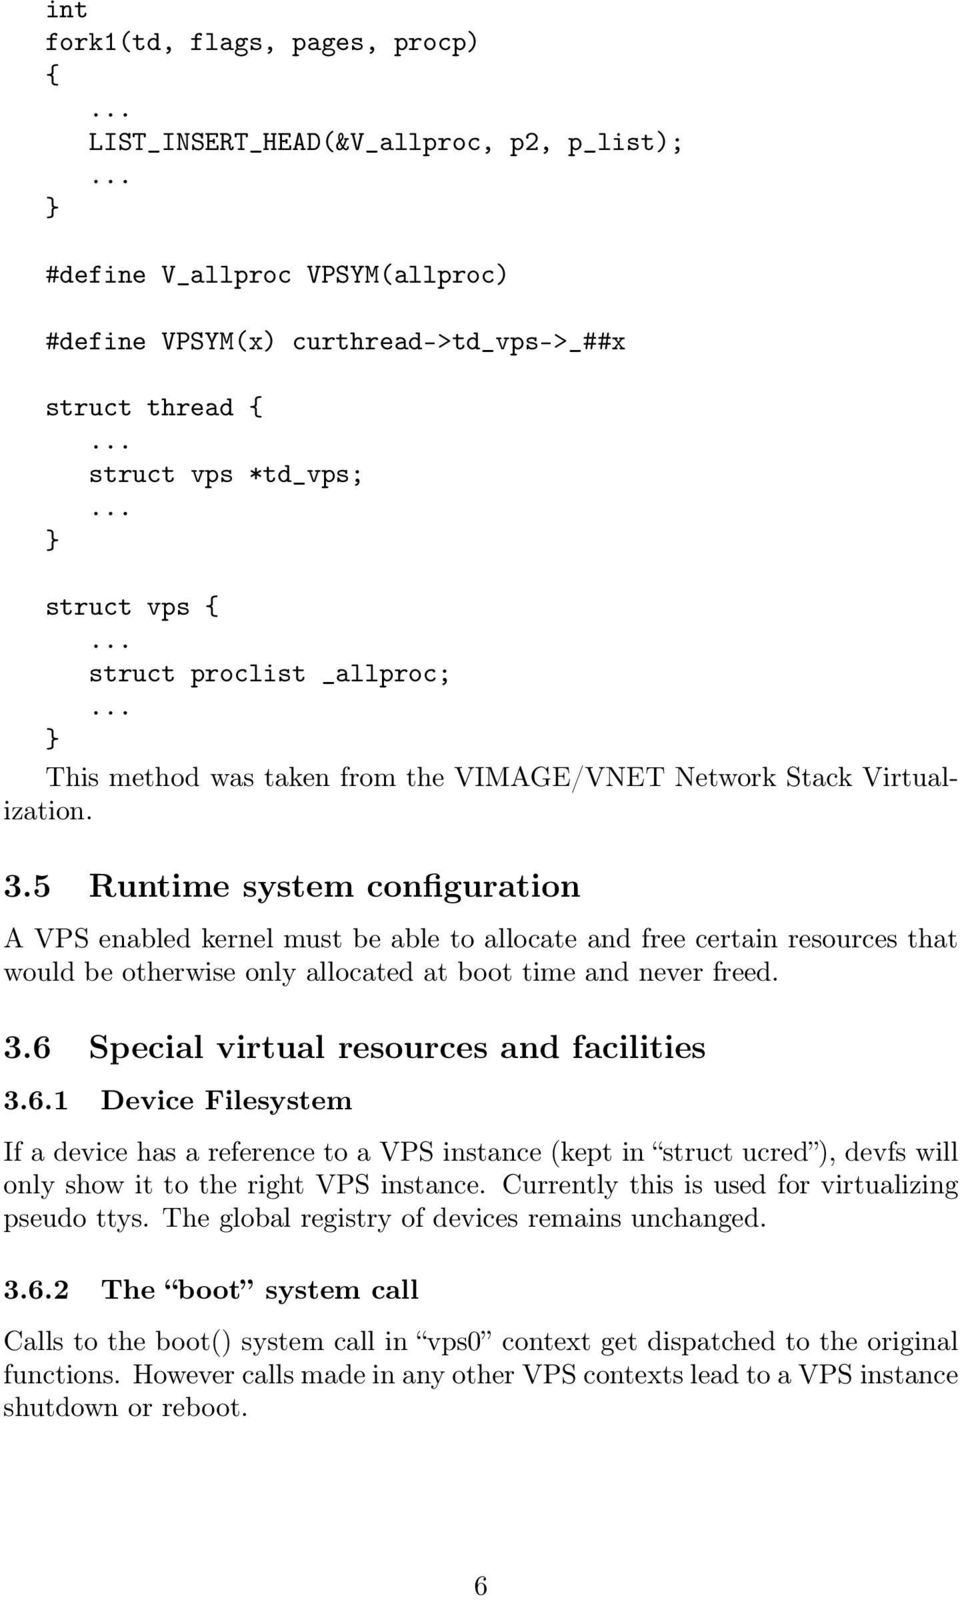 5 Runtime system configuration A VPS enabled kernel must be able to allocate and free certain resources that would be otherwise only allocated at boot time and never freed. 3.